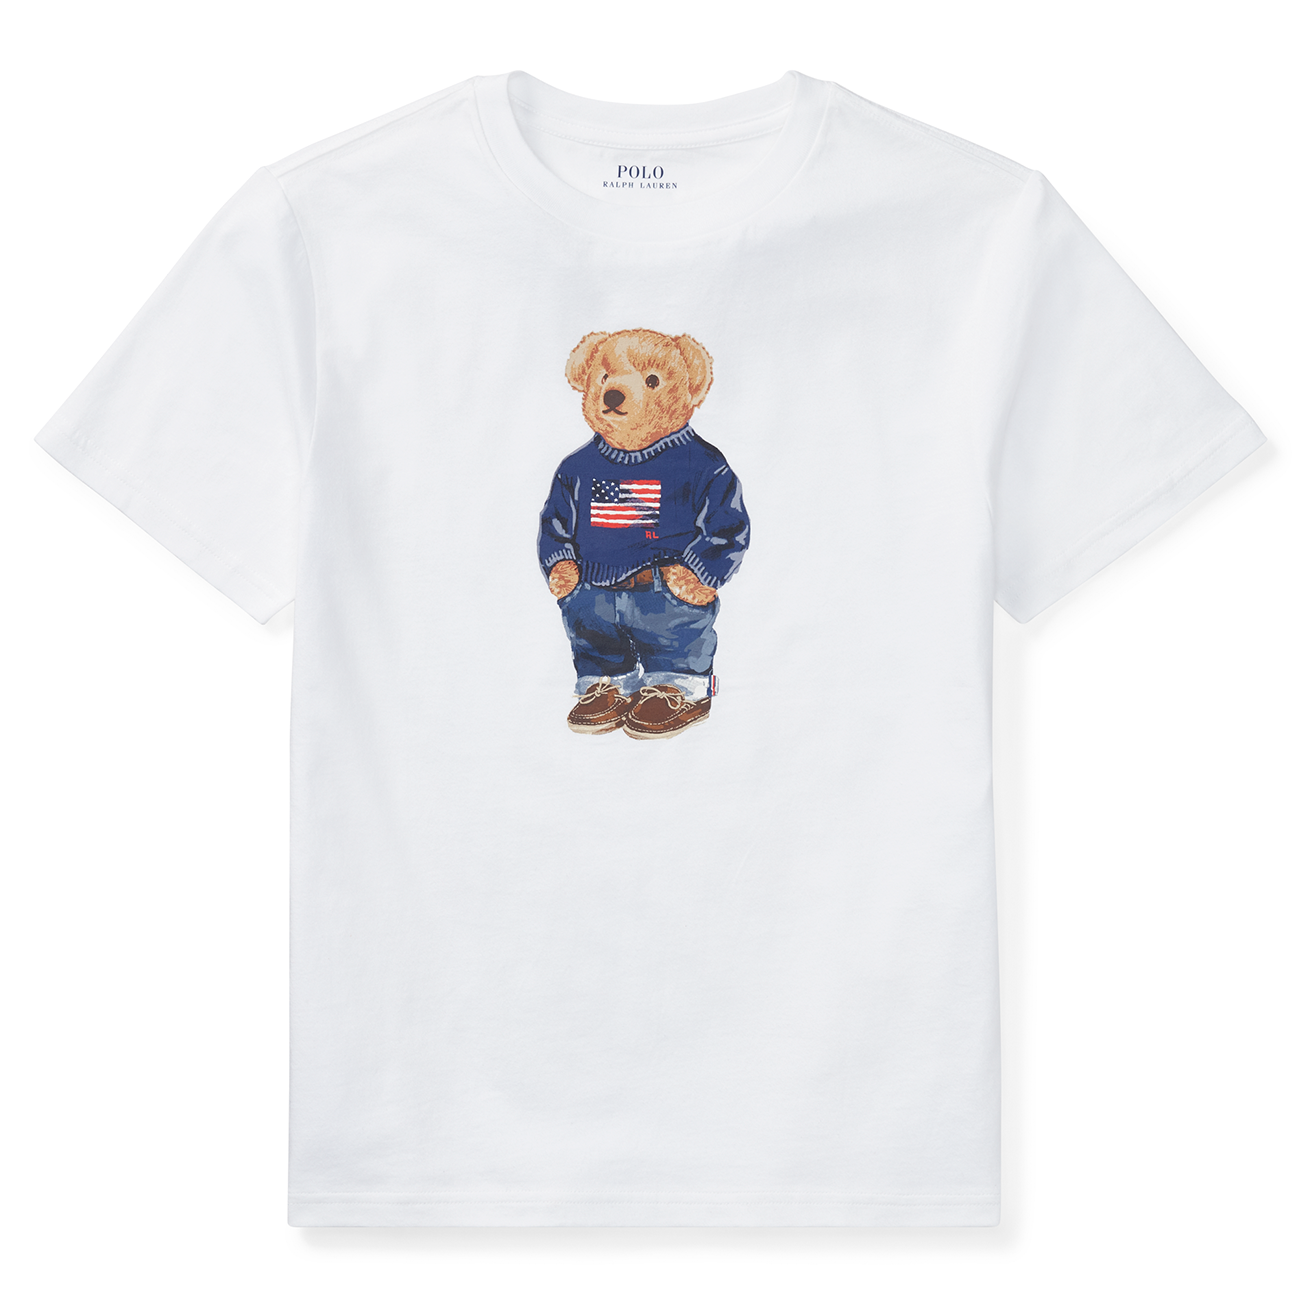 58d6ed41ad5855 Polo Ralph Lauren Boy Short Sleeved T-shirt Bear White